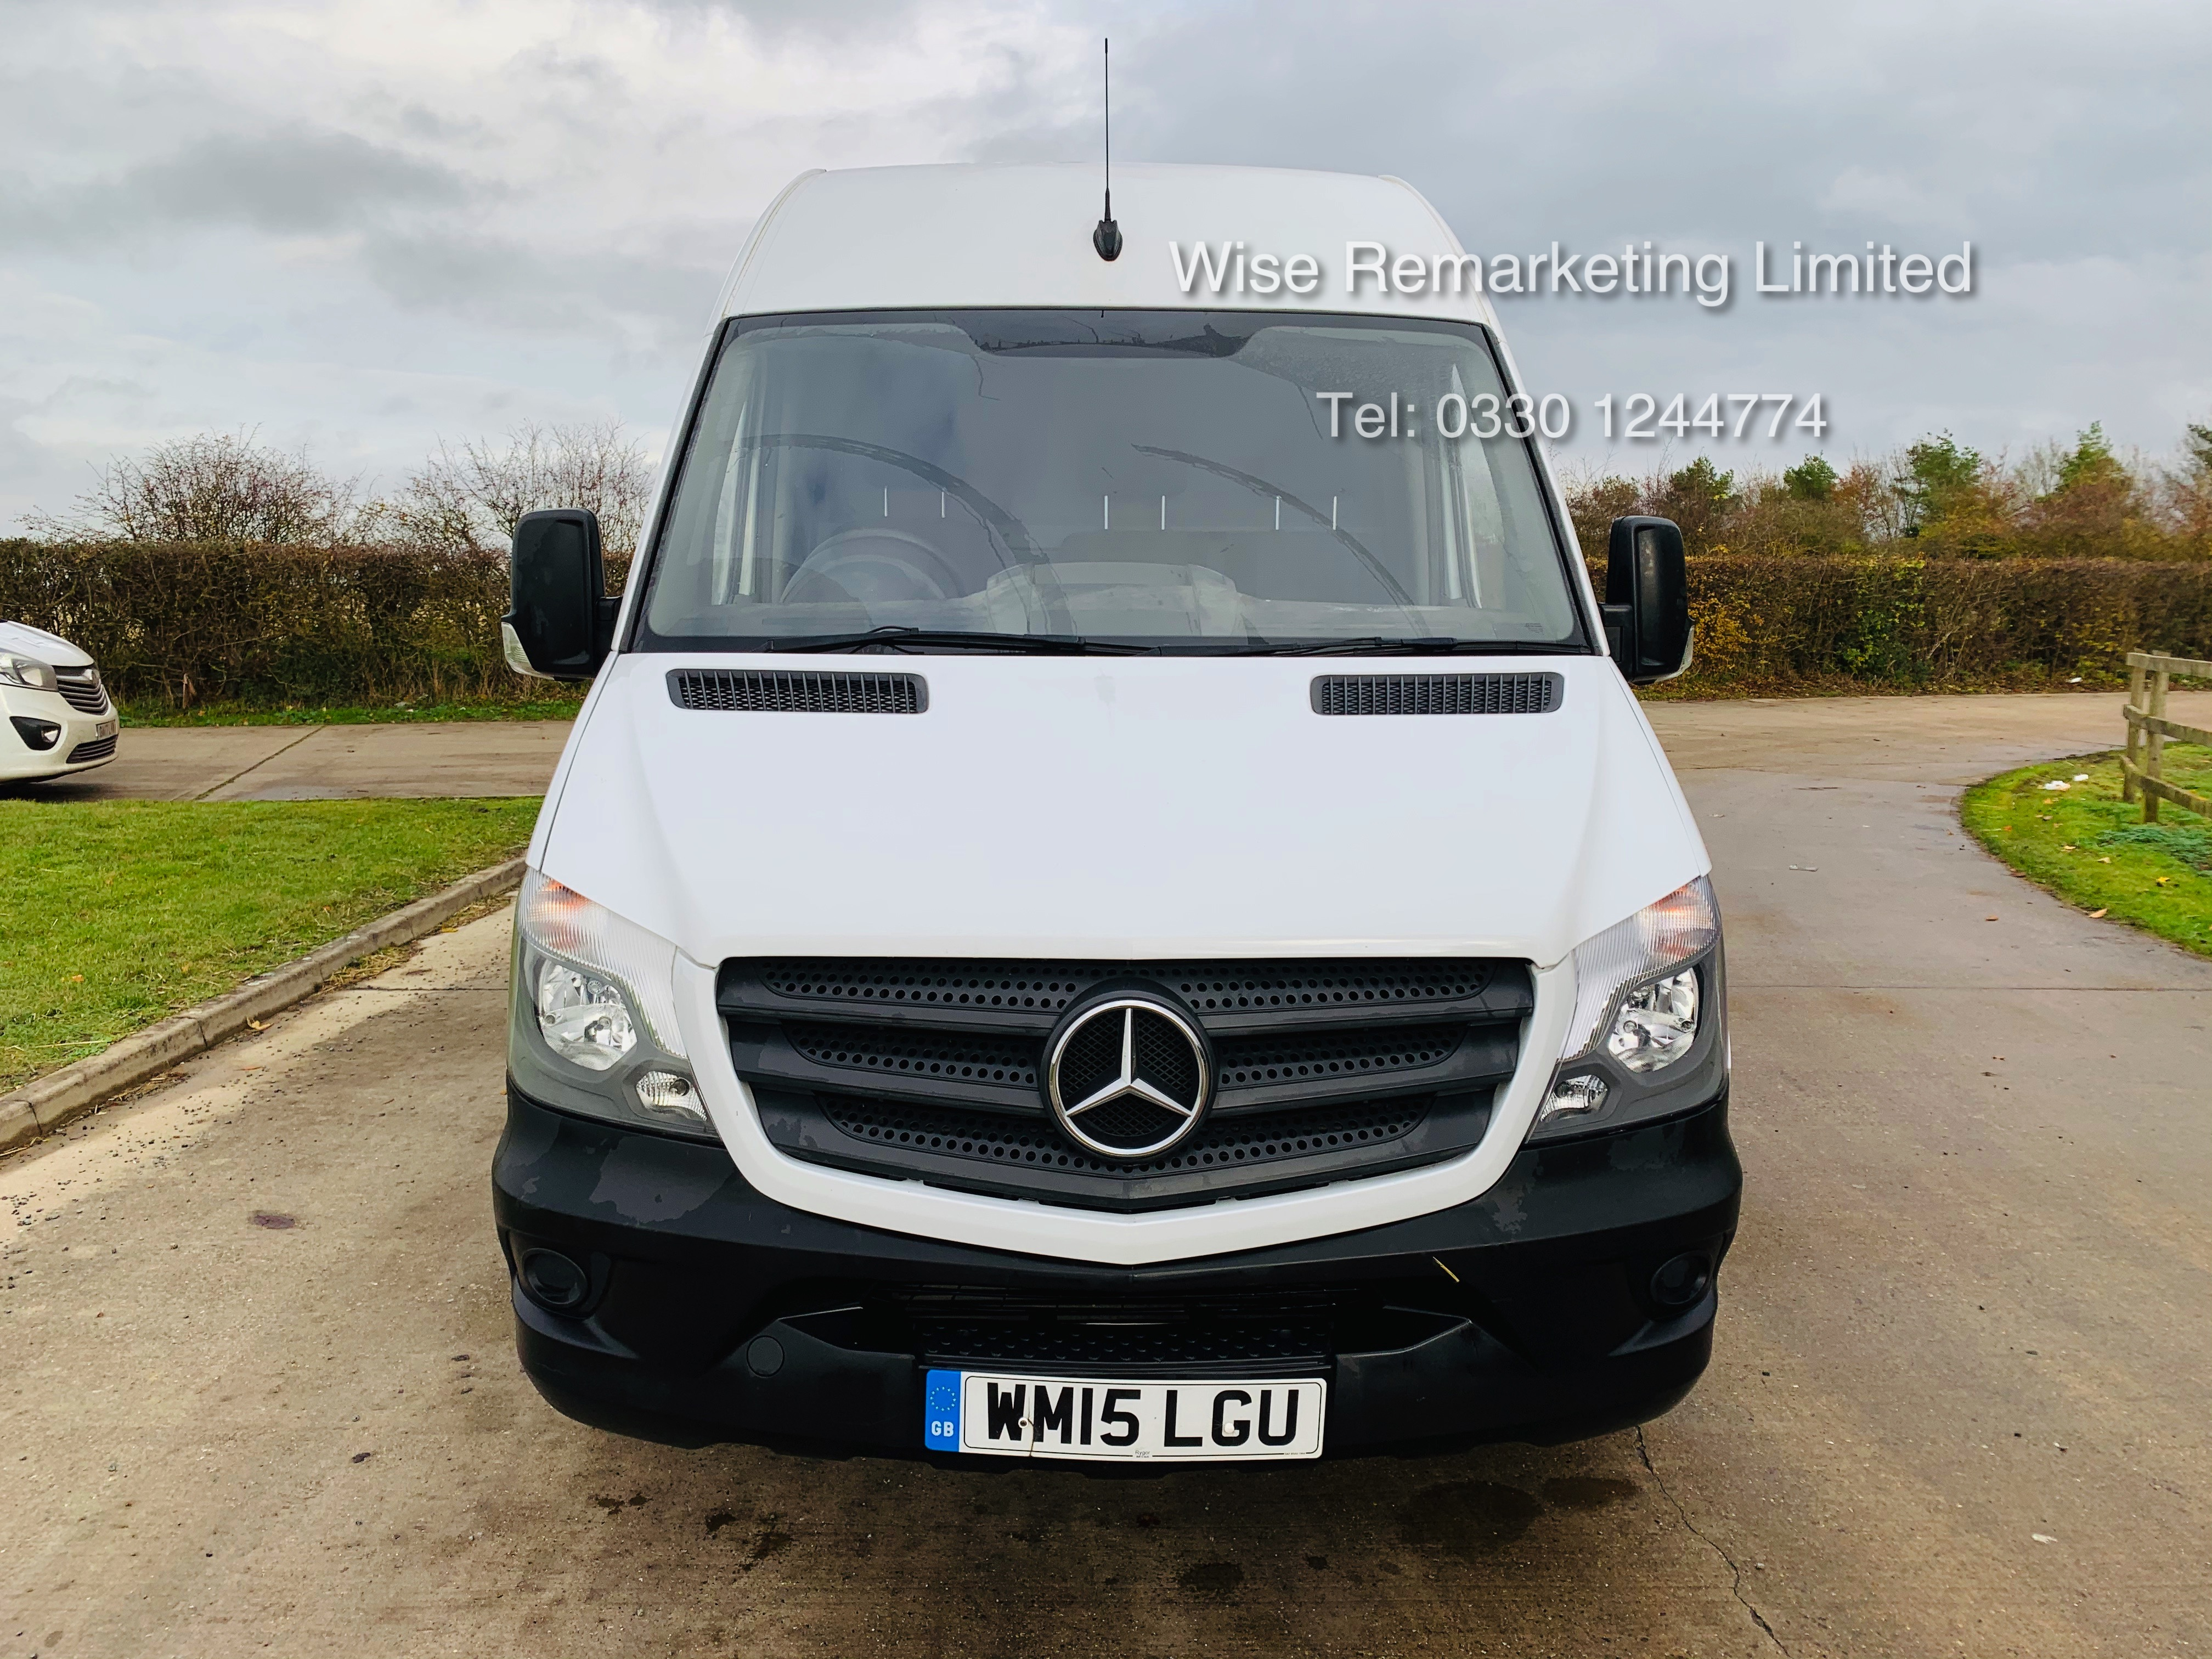 *Reserve Met* Mercedes Sprinter 313 CDI 2.1TD - 2015 15 Reg - Company Maintained - Low Miles - Image 8 of 16